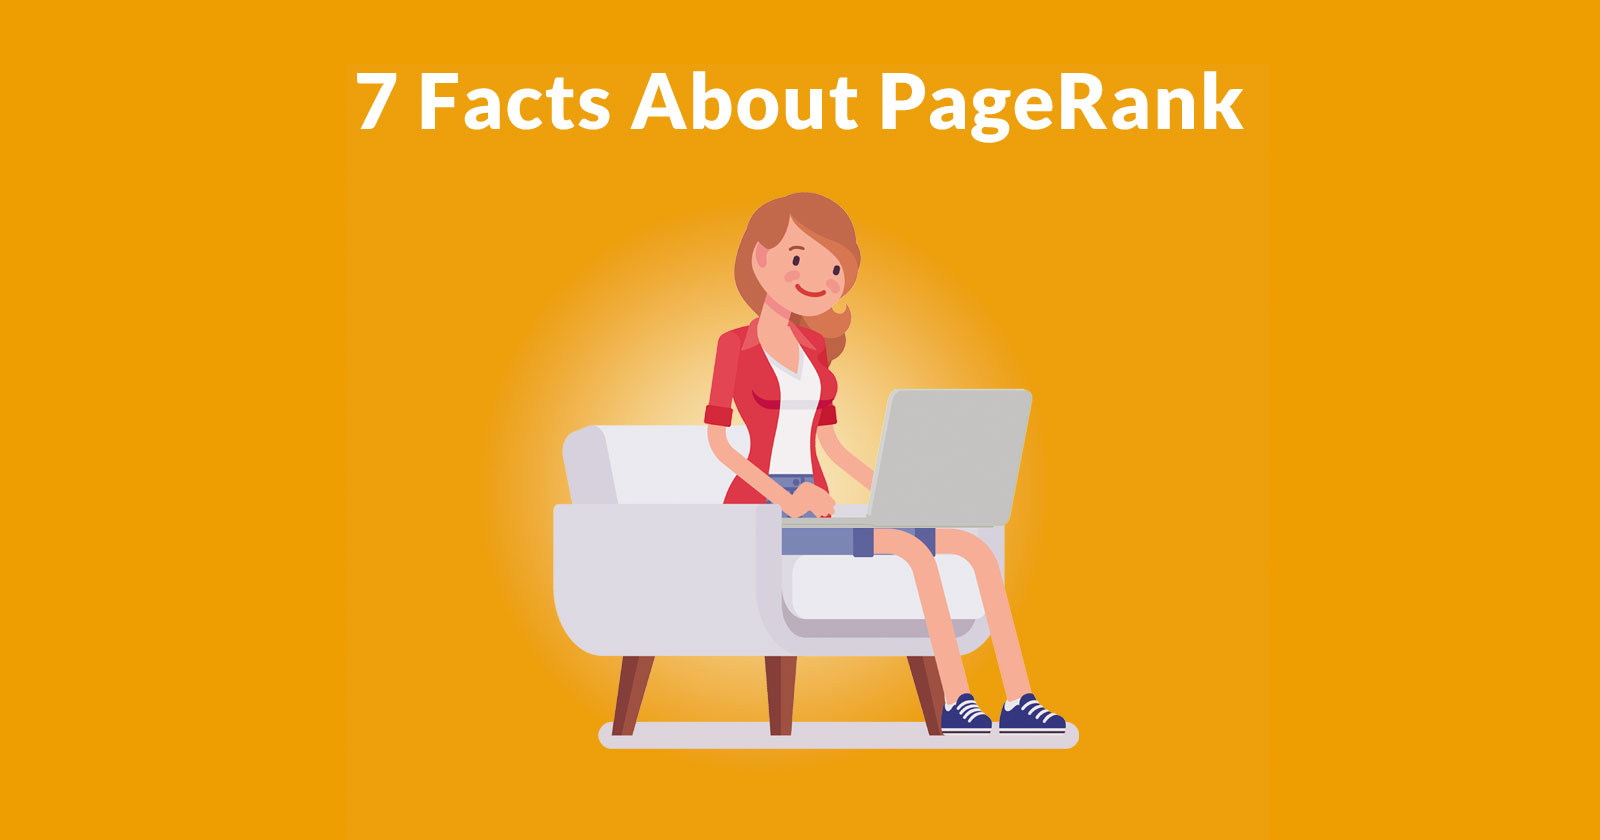 https://www.searchenginejournal.com/7-facts-about-pagerank/234109/